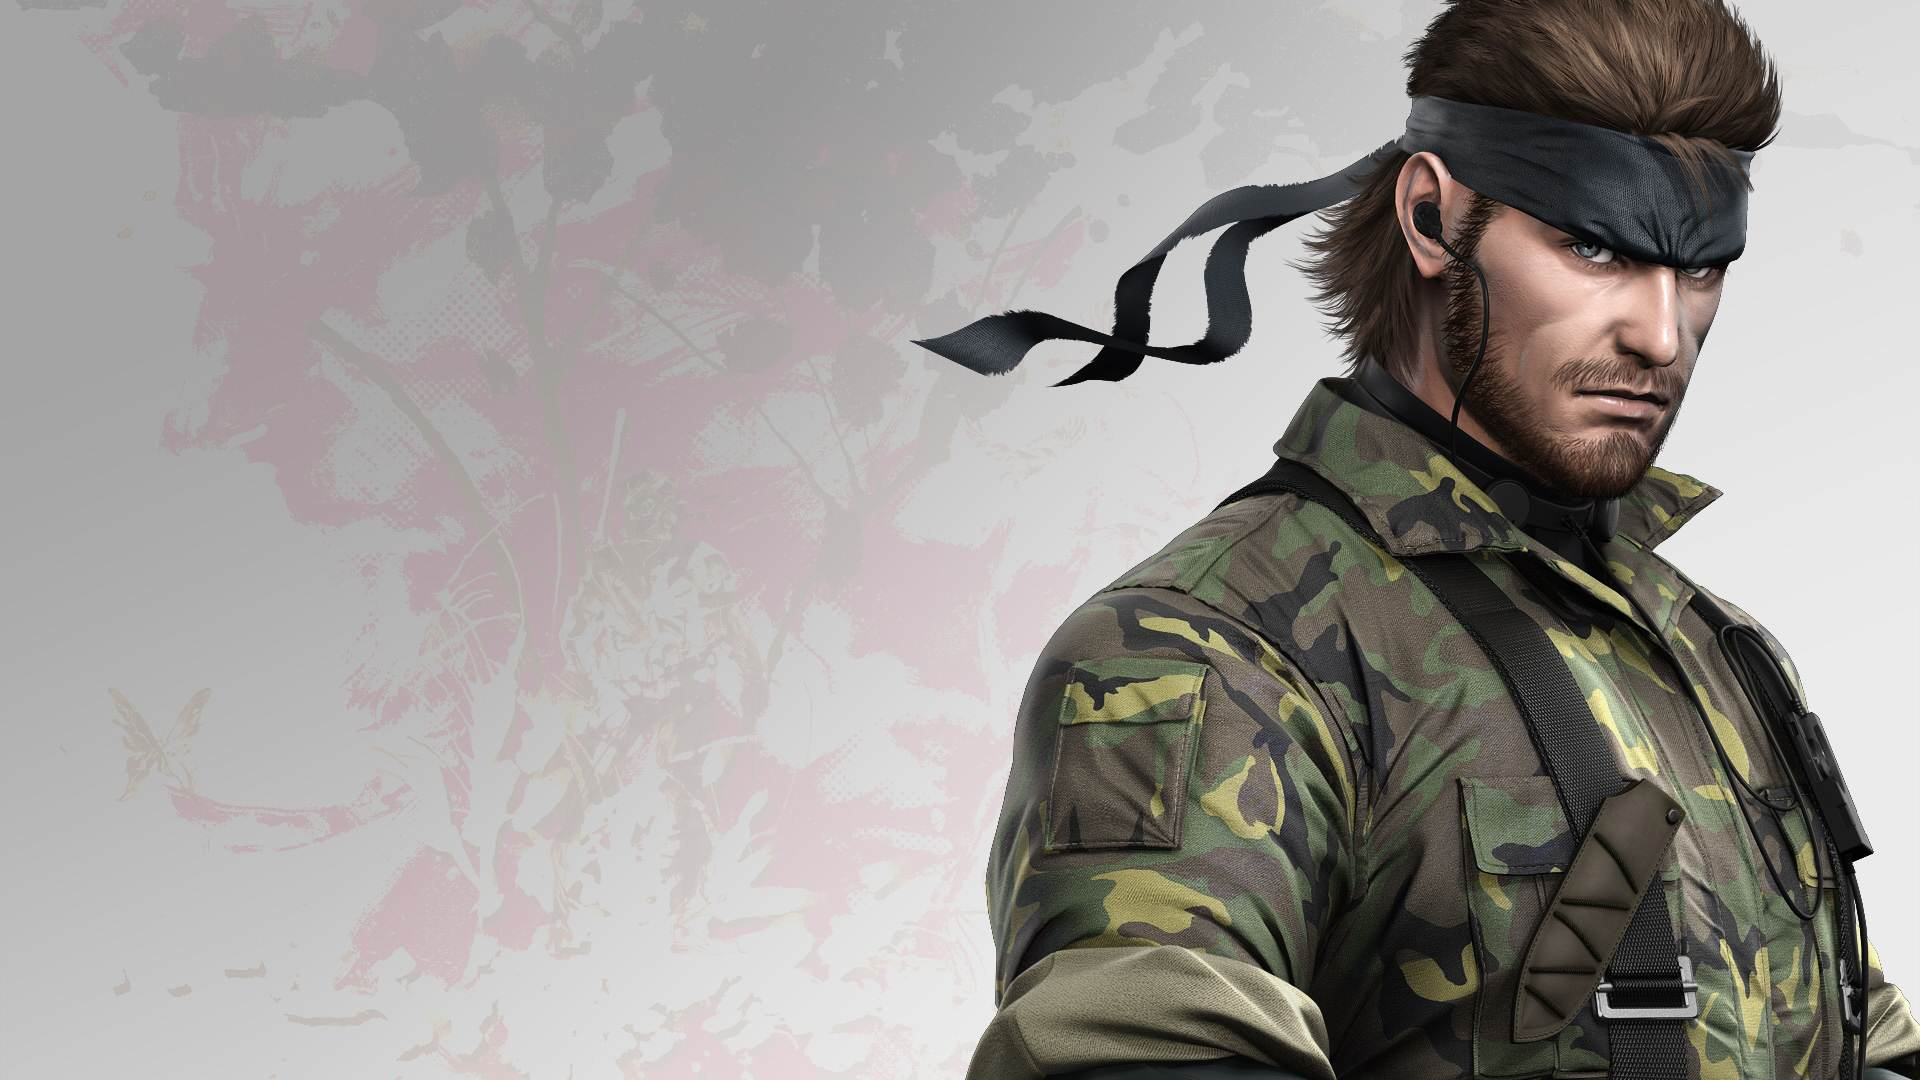 Iconic Metal Gear Solid Voice Actor Has No Love For Hideo Kojima mgs snake